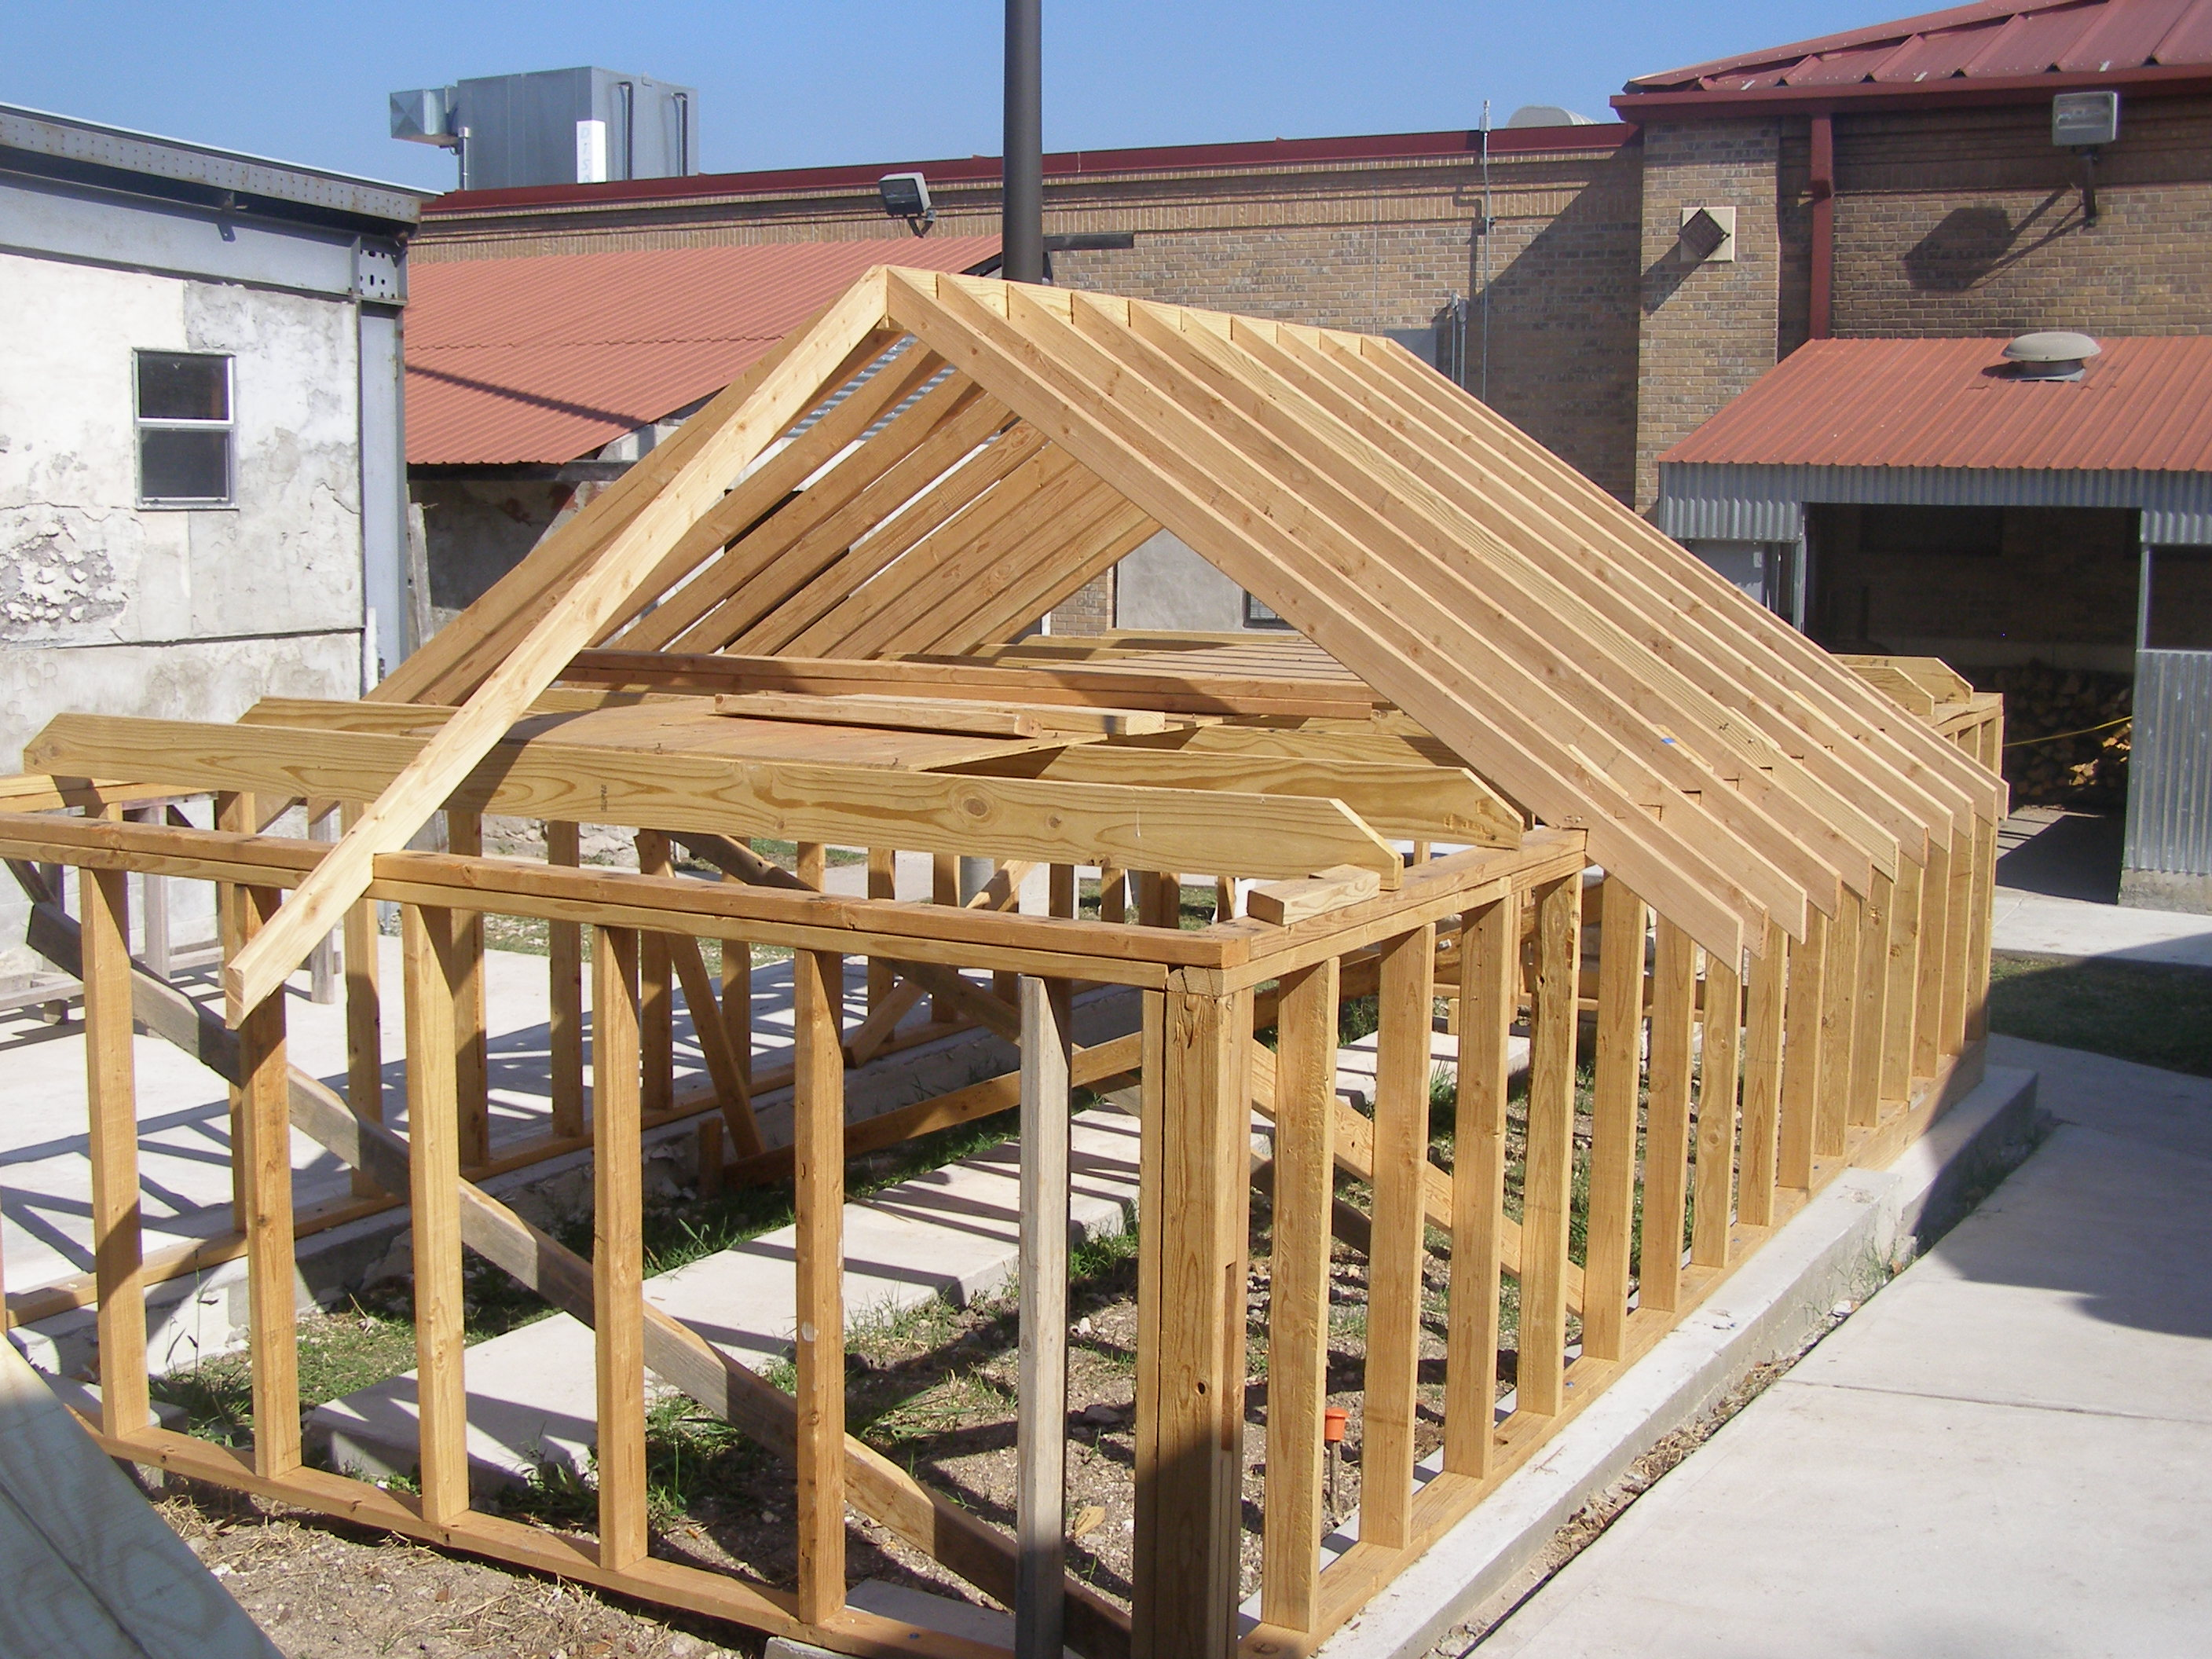 Roofing rafters